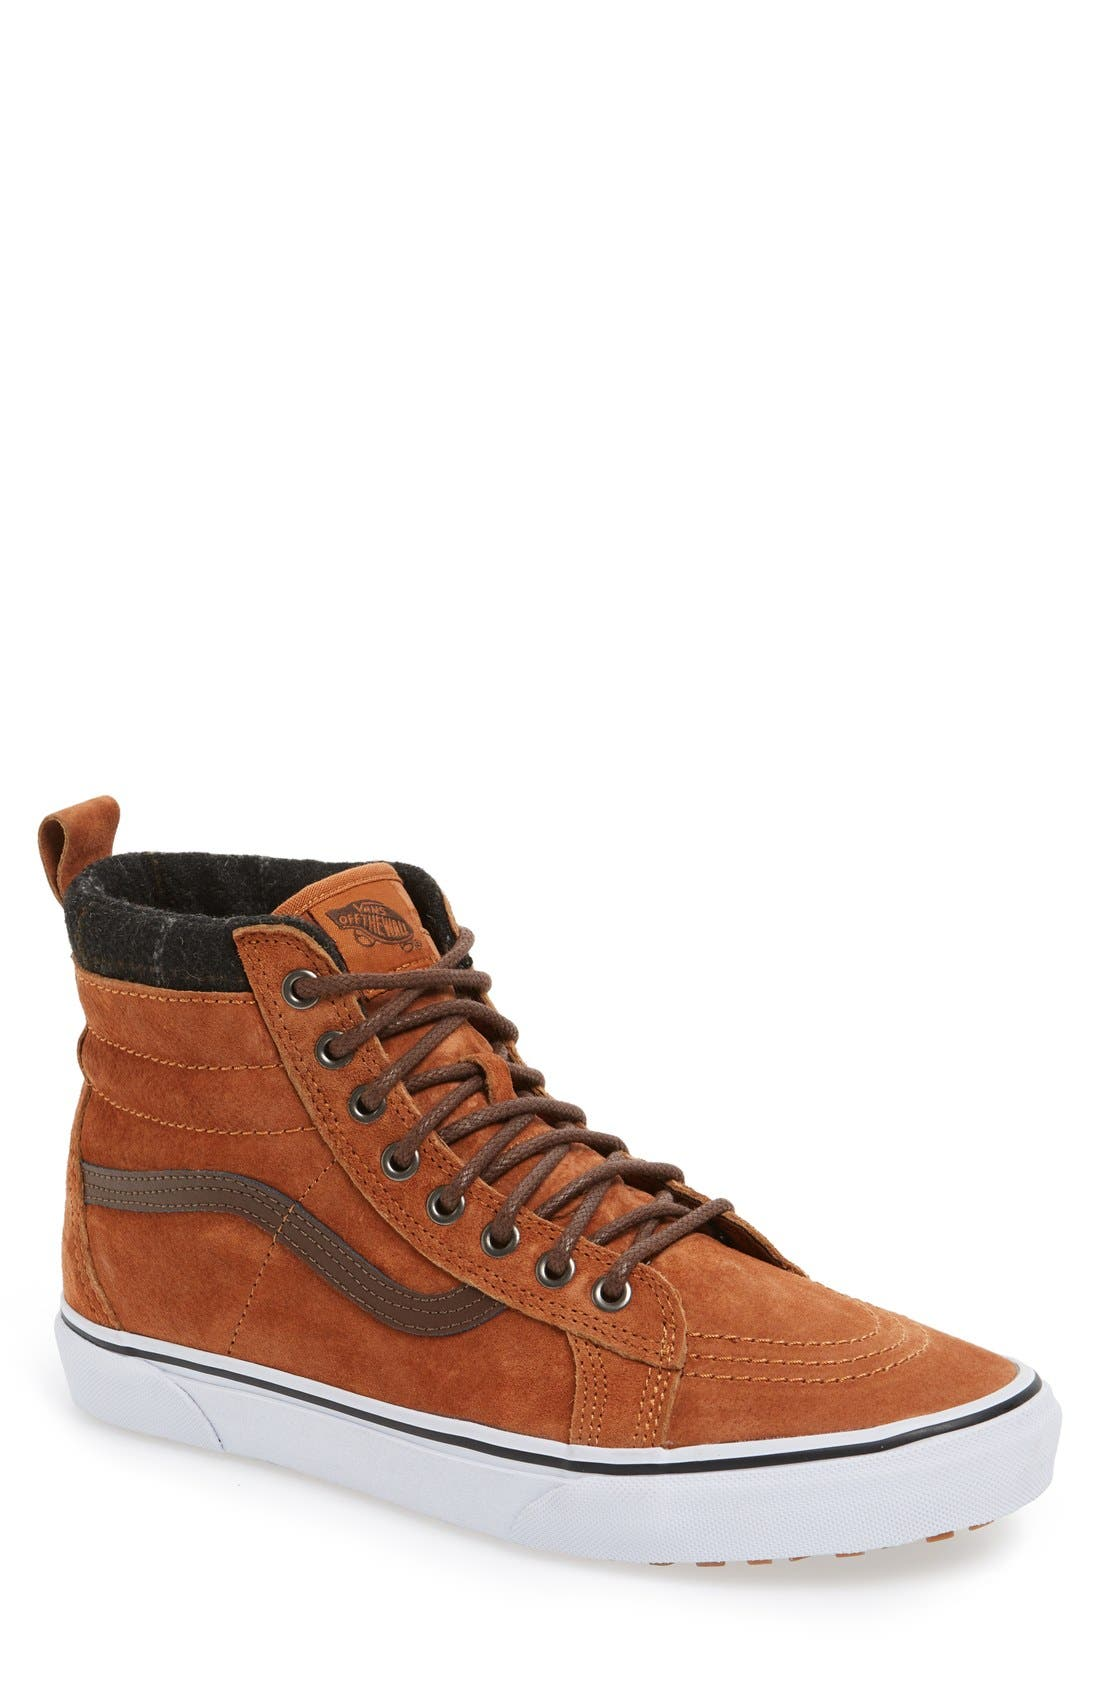 Alternate Image 1 Selected - Vans 'Sk8-Hi MTE' Sneaker (Men)